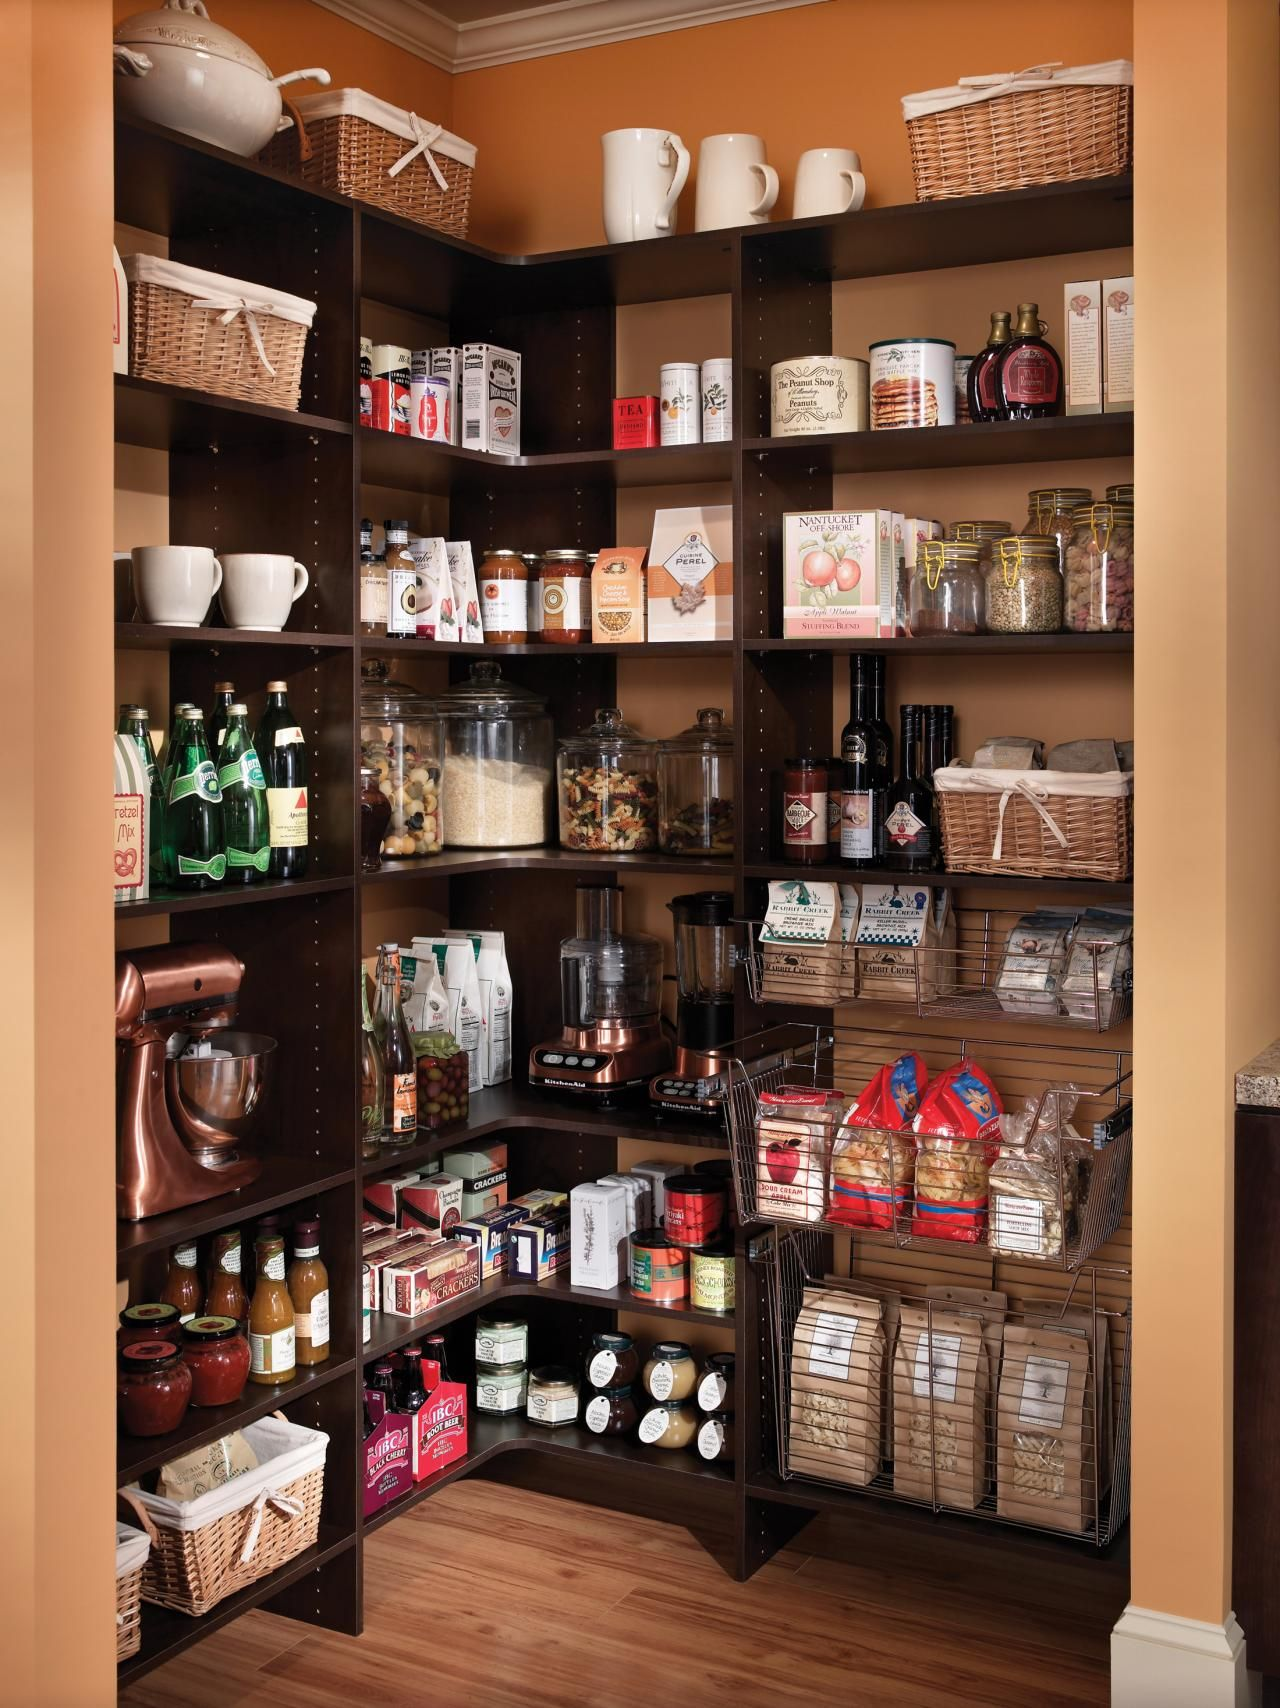 organize your kitchen pantry or cupboard with these affordable and efficient pantry organizer suggestions from hgtv